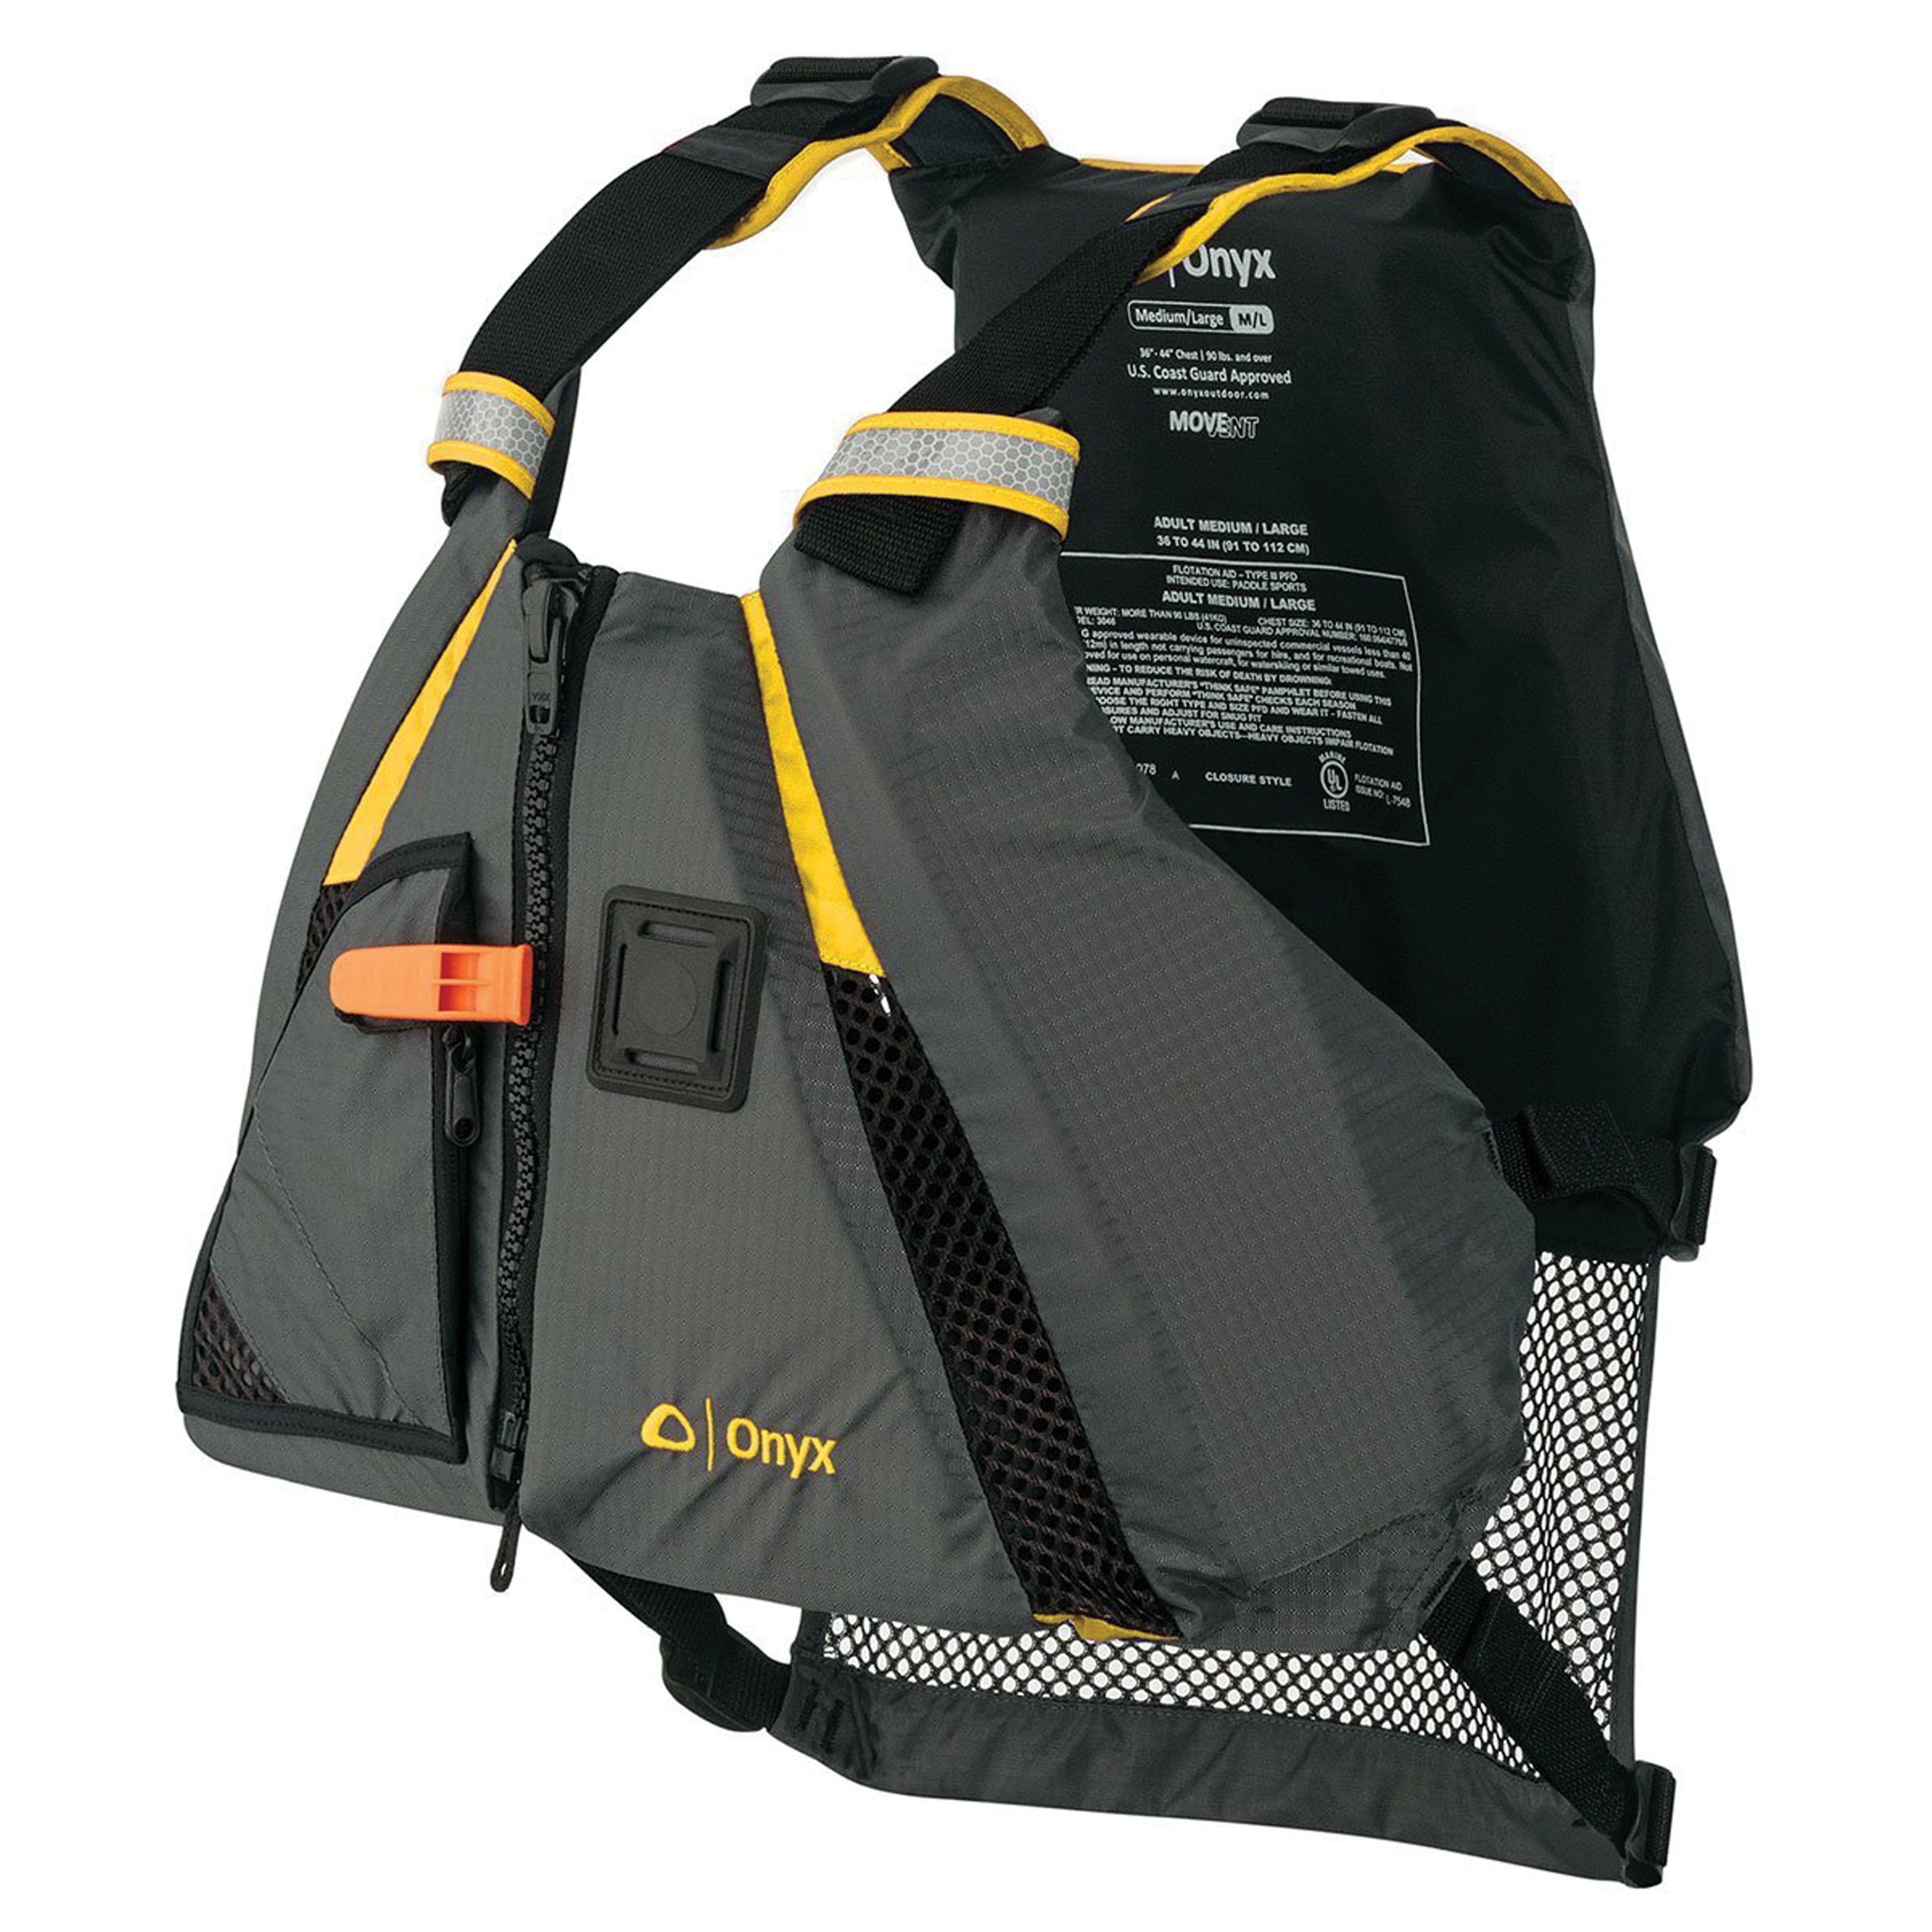 Onyx 122200-300-040-18 Onyx MoveVent Dynamic Vest Adult Yellow M/L